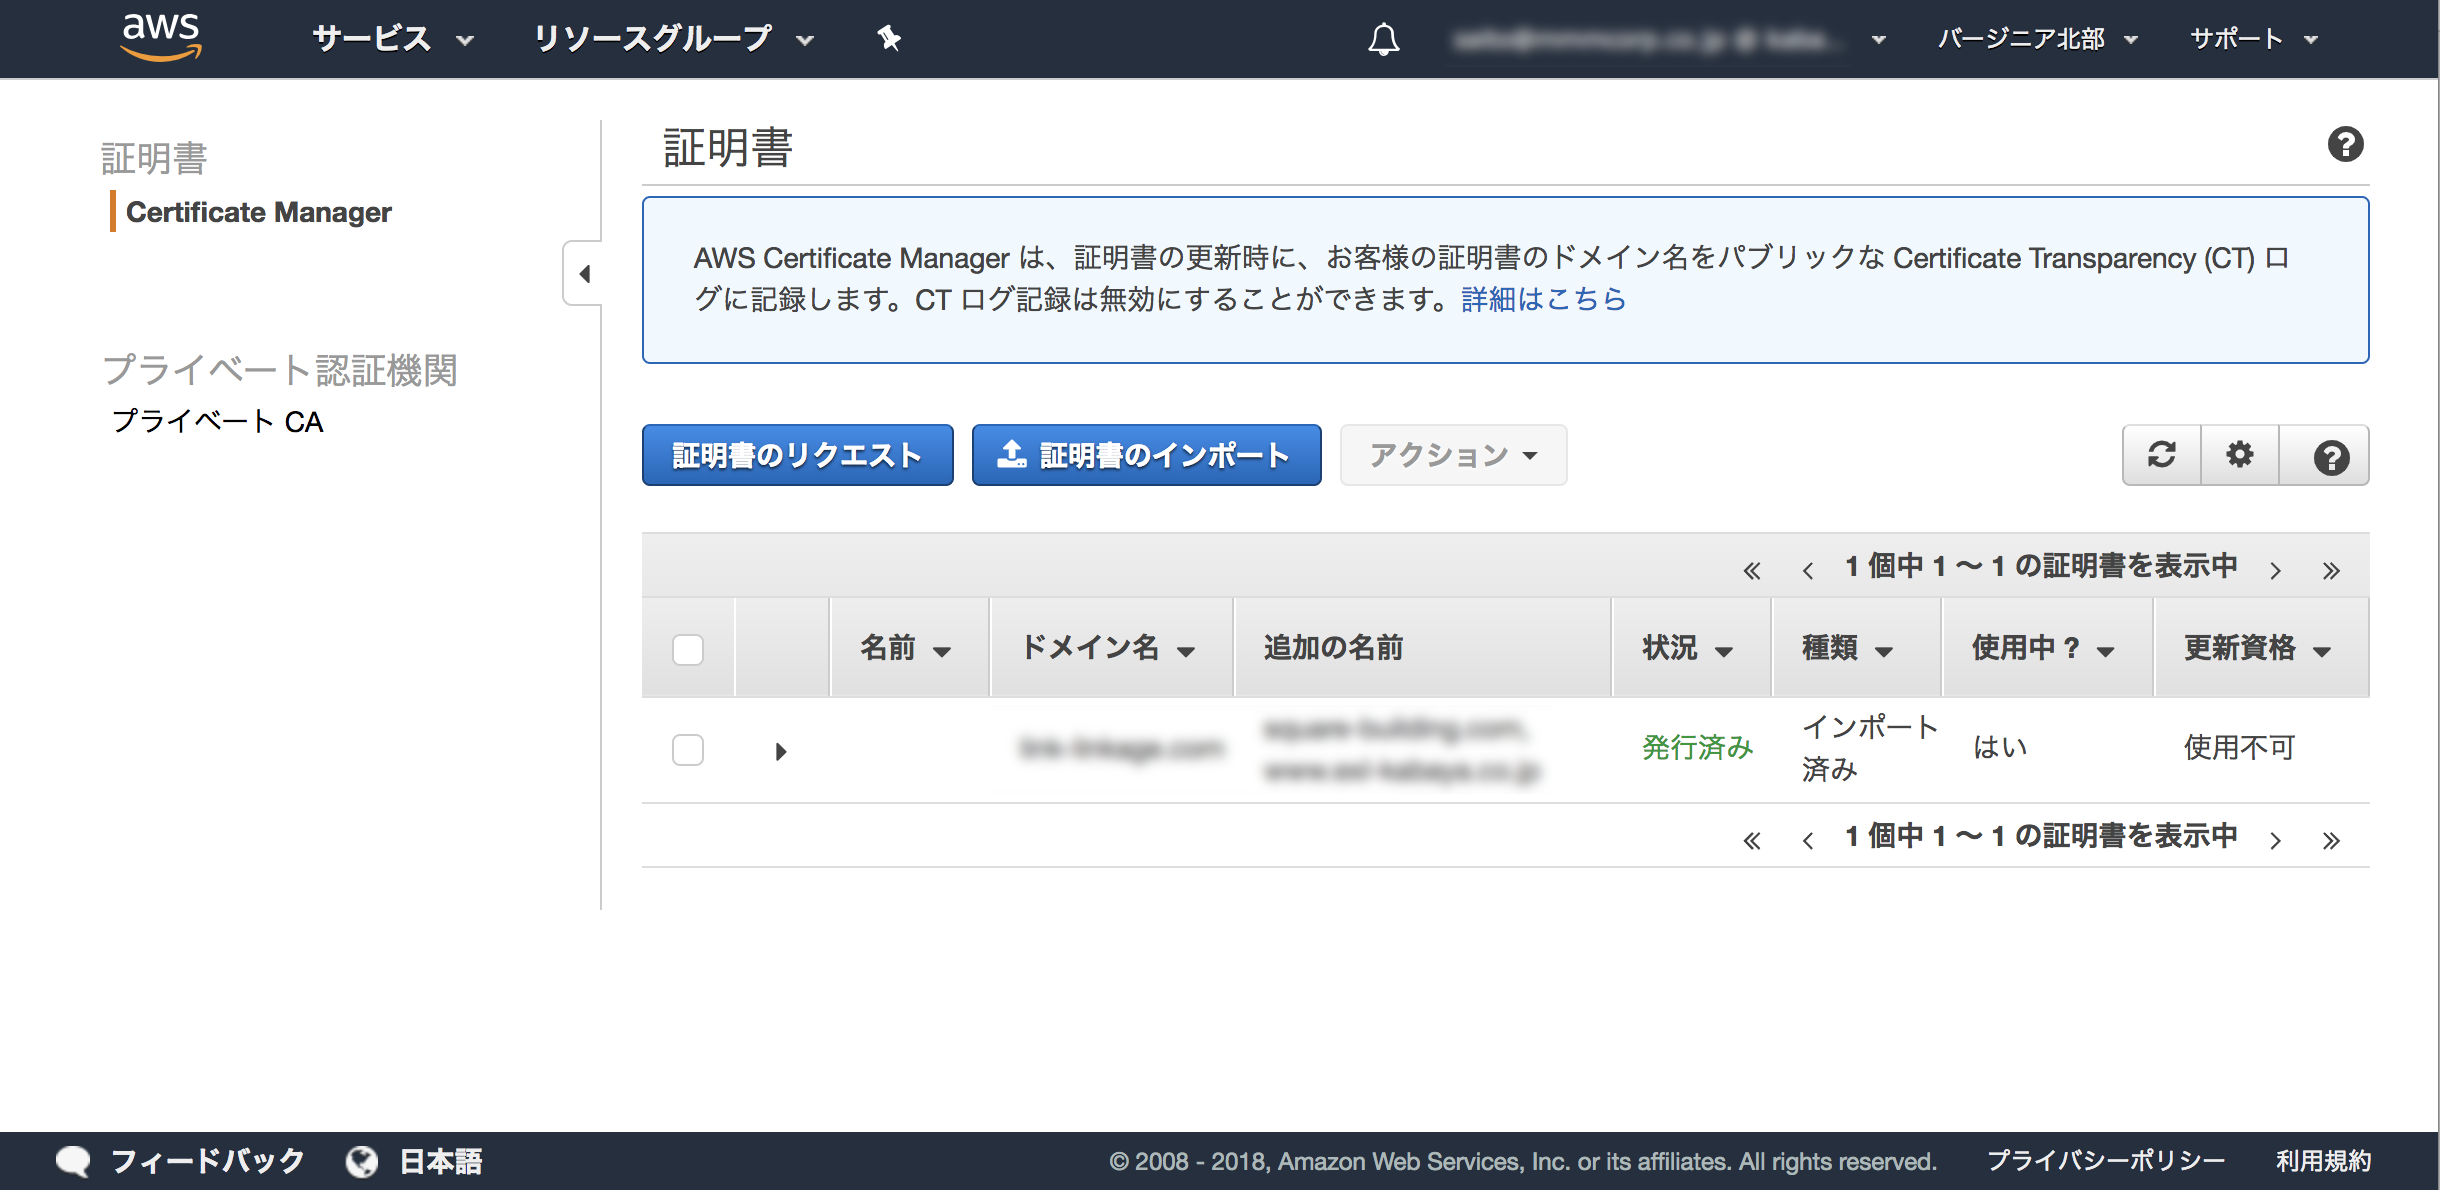 S3+CloudFrontで静的サイトホスティングする際に既存の証明書を導入する